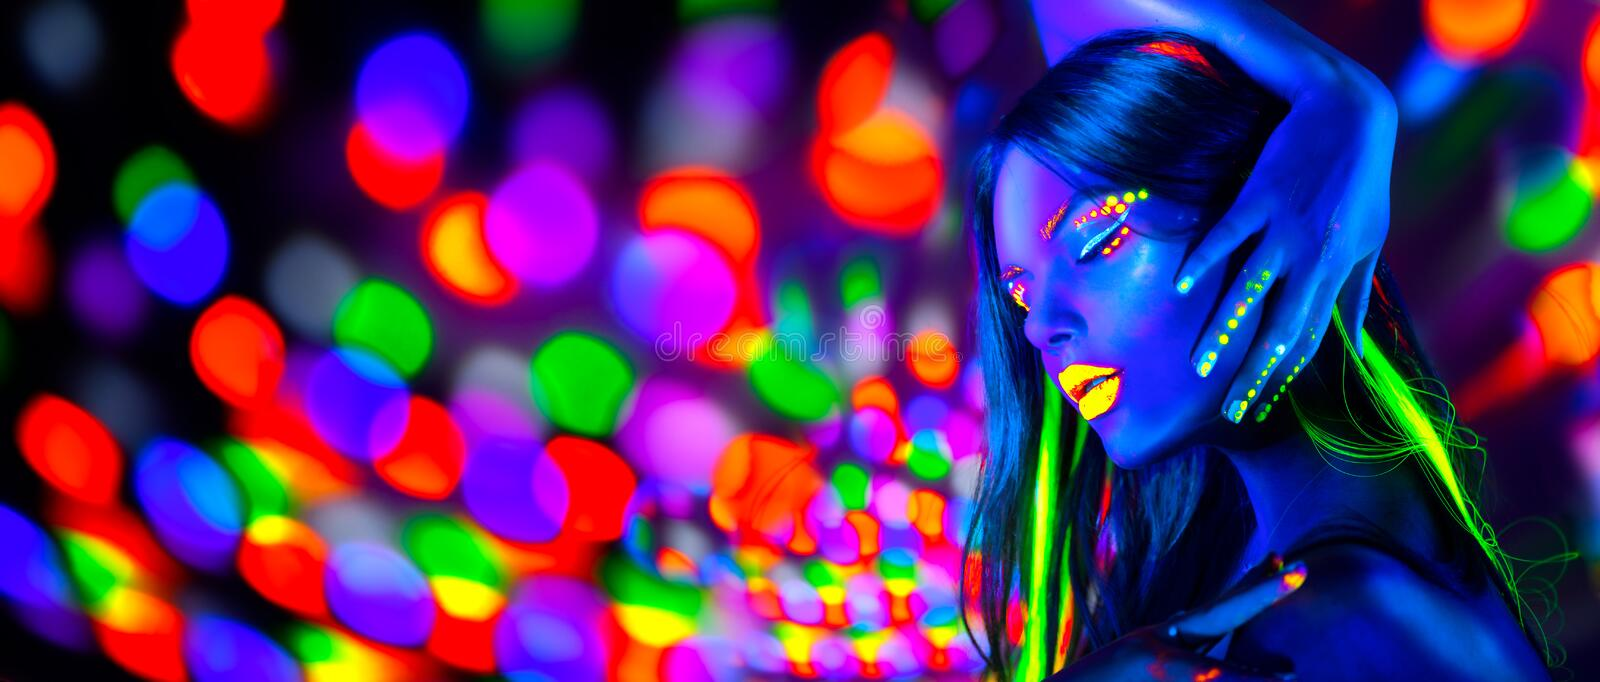 Sexy girl dancing in neon lights. Fashion model woman with fluorescent makeup posing in UV. On bright background stock image